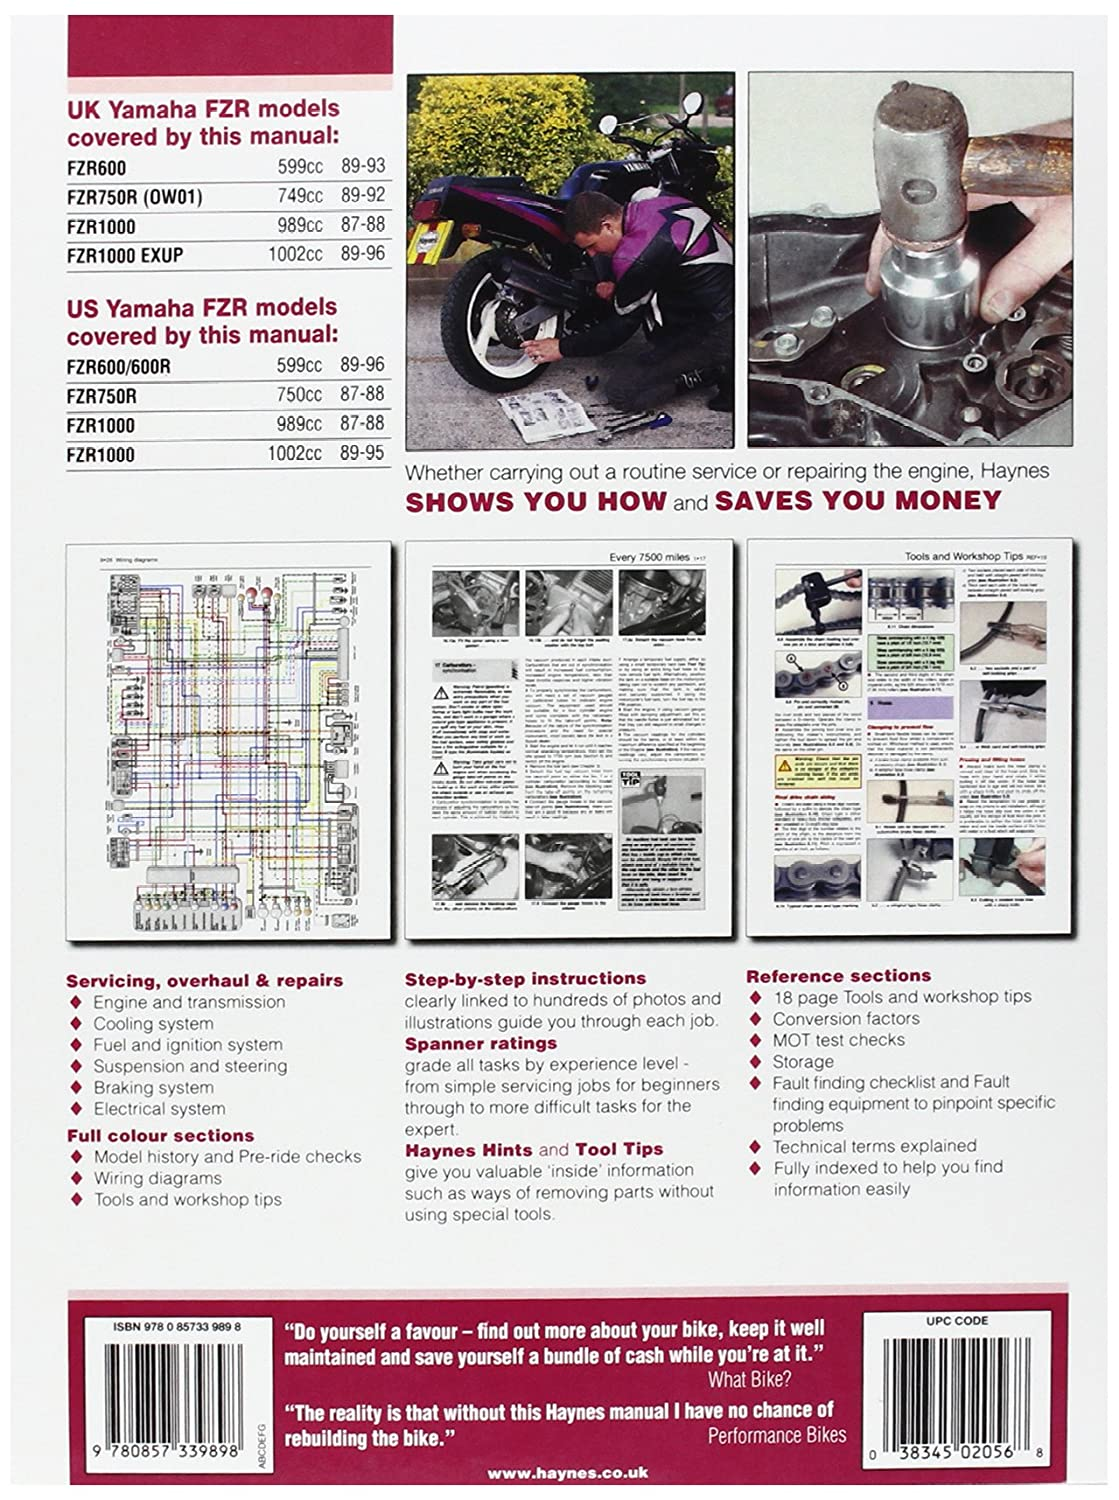 89 Fzr 1000 Wiring Diagram Yamaha 600 Amazon Com Manual Yam Fzr600 87 98 Automotive Triumph Daytona 675